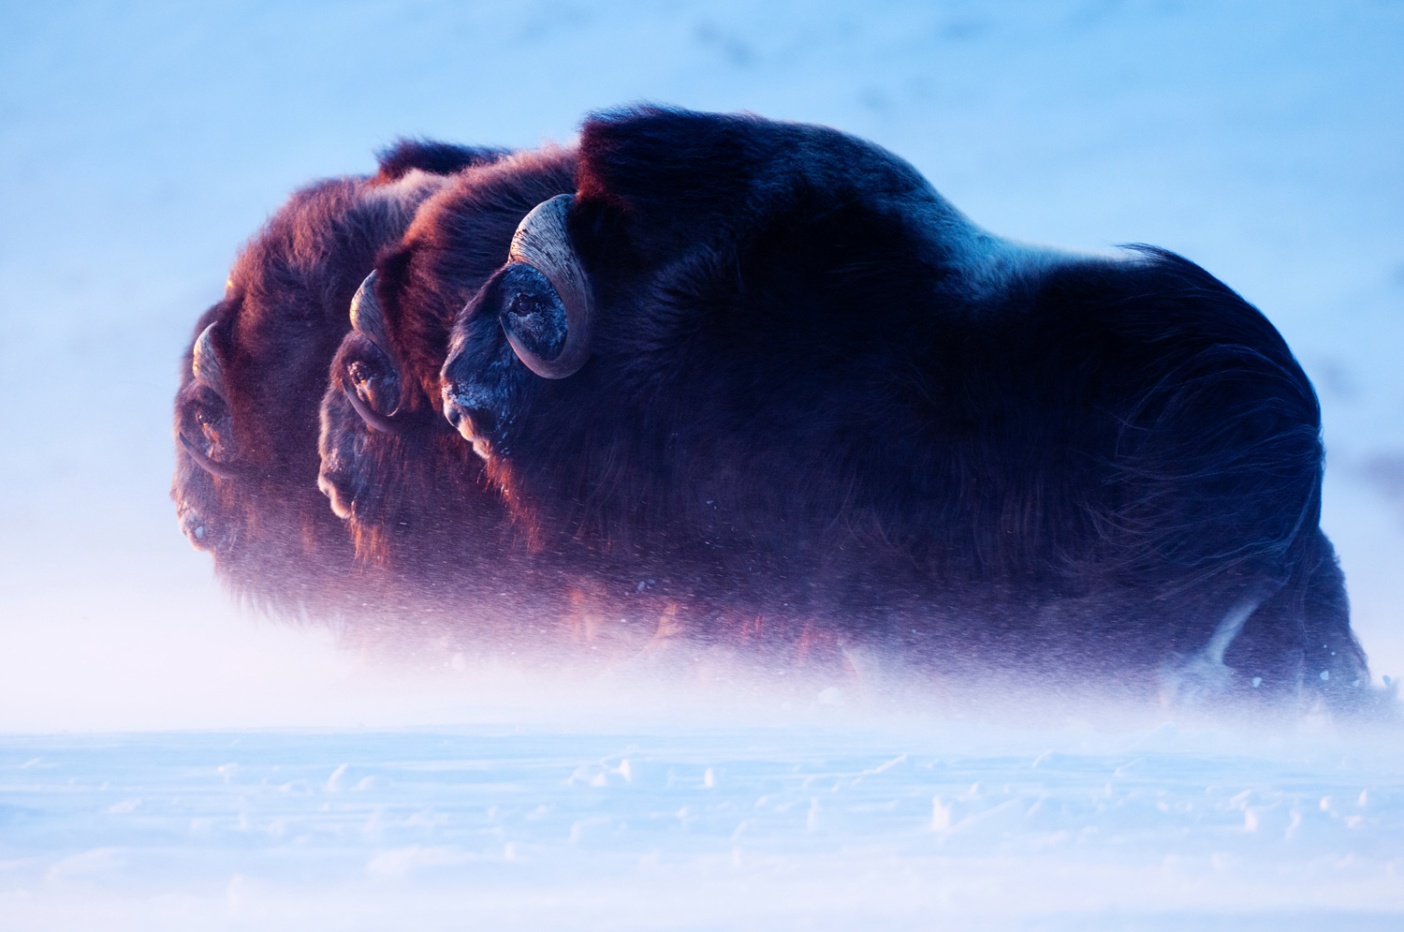 Three muskox bulls push through a blizzard towards the setting sun. While I just about froze to death, it was just another day in the Arctic for these animals. Their fur is seven times warmer than the warmest known sheep wool. Photo: Florian Schulz